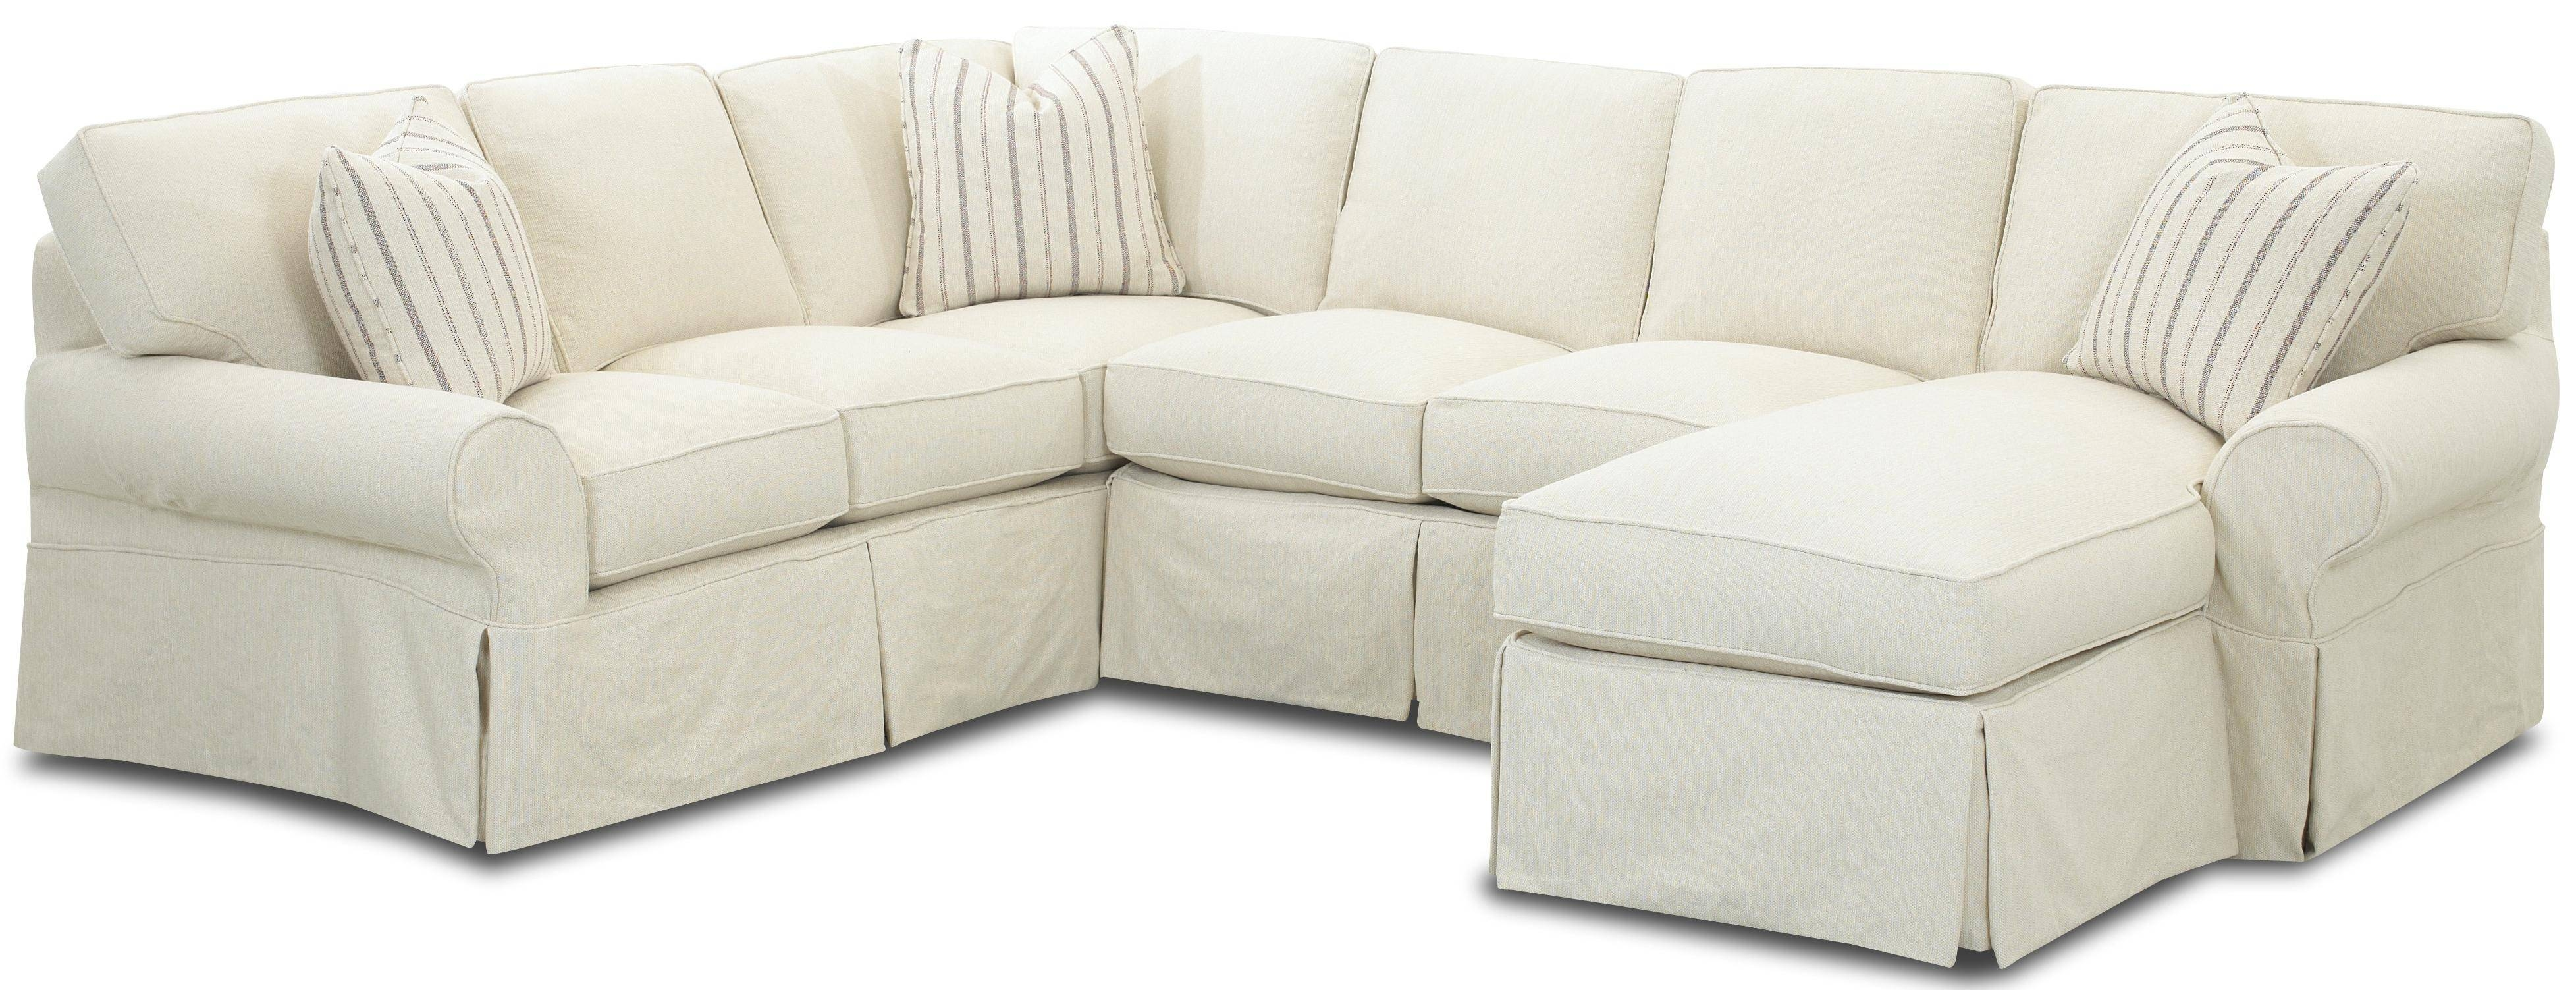 Furniture: Inspirational Slipcover Sectional Sofa For Modern with regard to Slipcovers for Sleeper Sofas (Image 6 of 15)